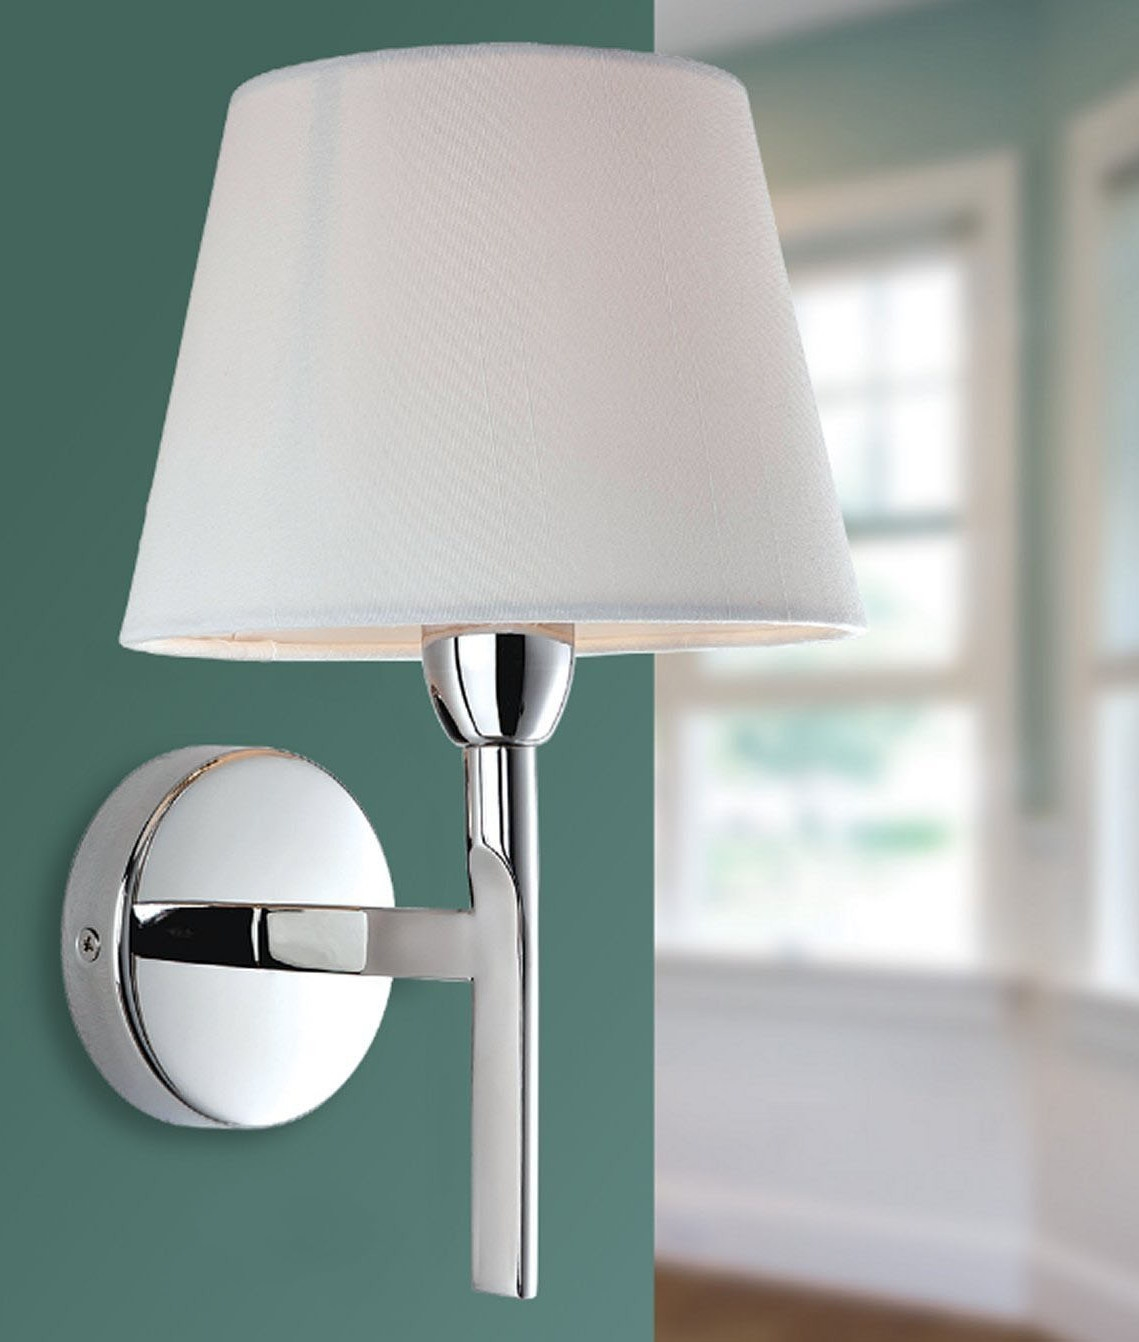 Cream Wall Lamp Shades : Chrome Arm Wall Light with Choice of Shade Finish